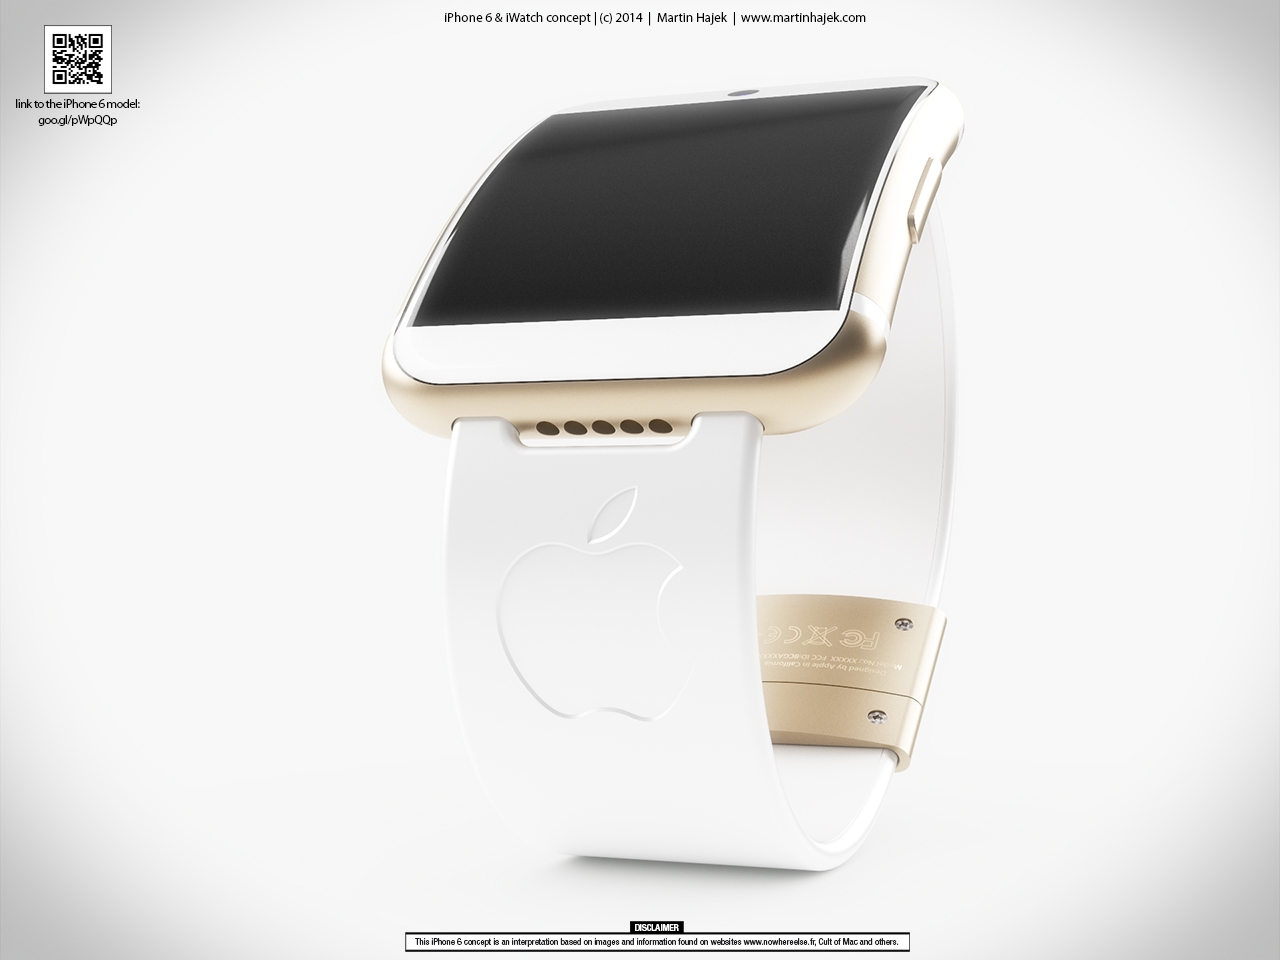 iWatch: Concepto basado en el rumorado iPhone 6